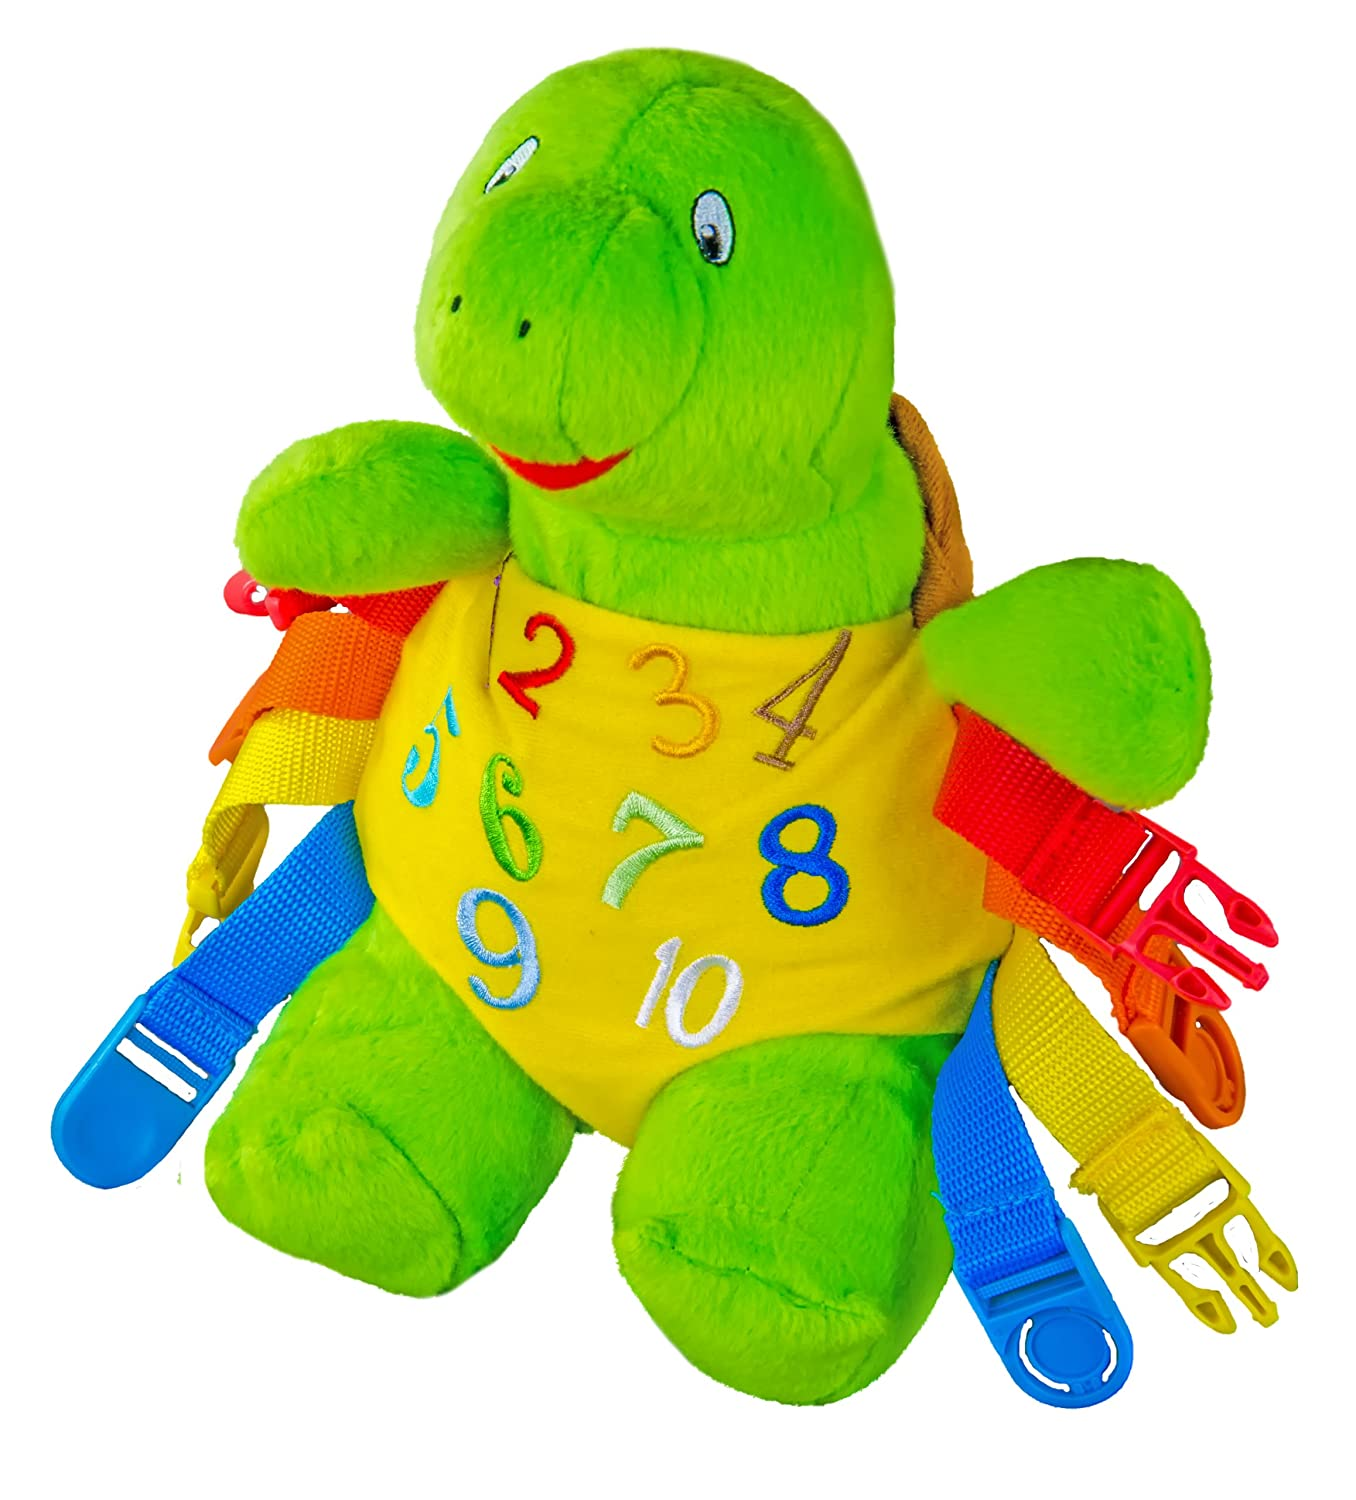 Buckle Toy Bucky Turtle Amazon Toys & Games